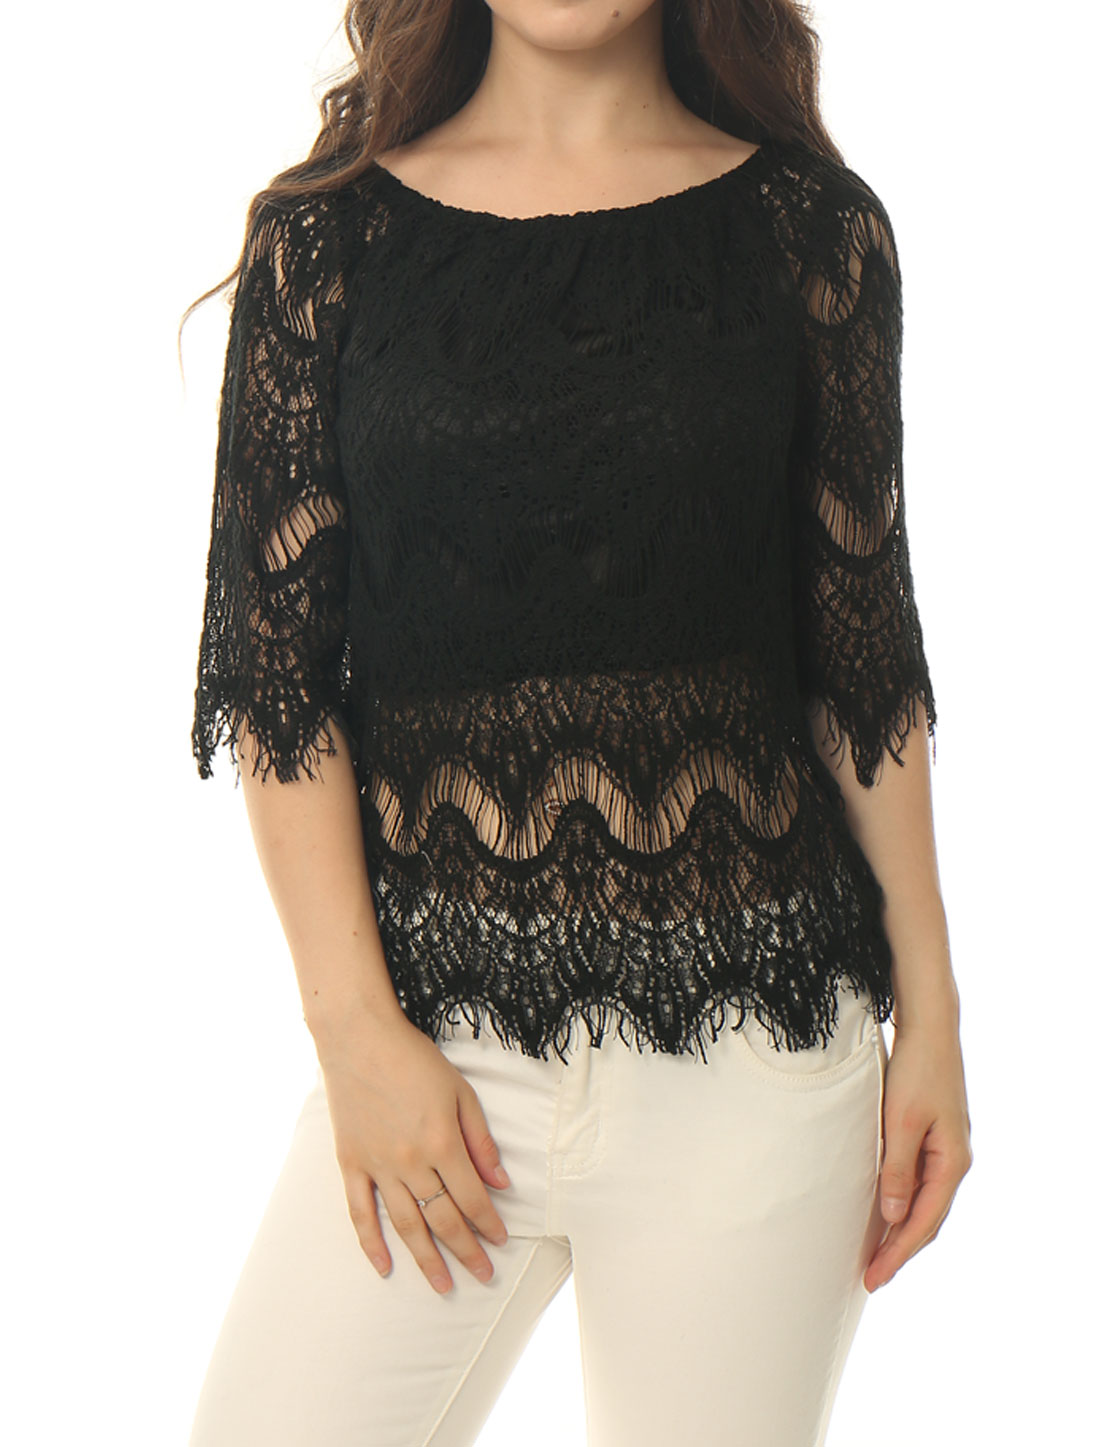 Women Half Sleeves Off Shoulder Hollow Out Lace Top Black S